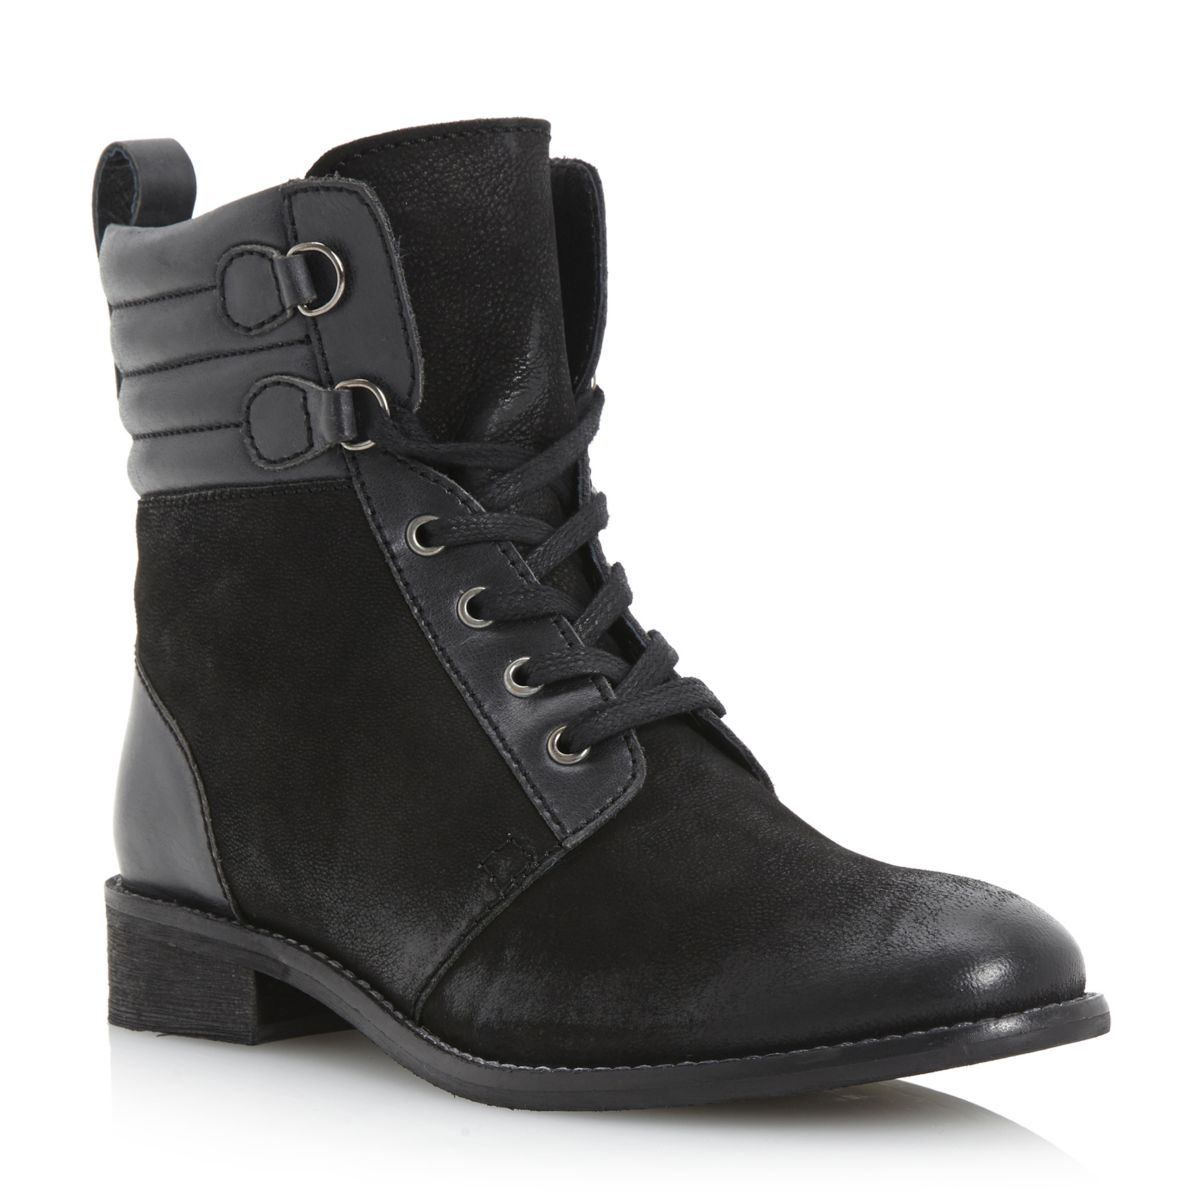 NEW-BERTIE-LADIES-PONTOS-WOMENS-BLACK-PADDED-CUFF-LACE-UP-ANKLE-BOOTS-SIZE-3-8